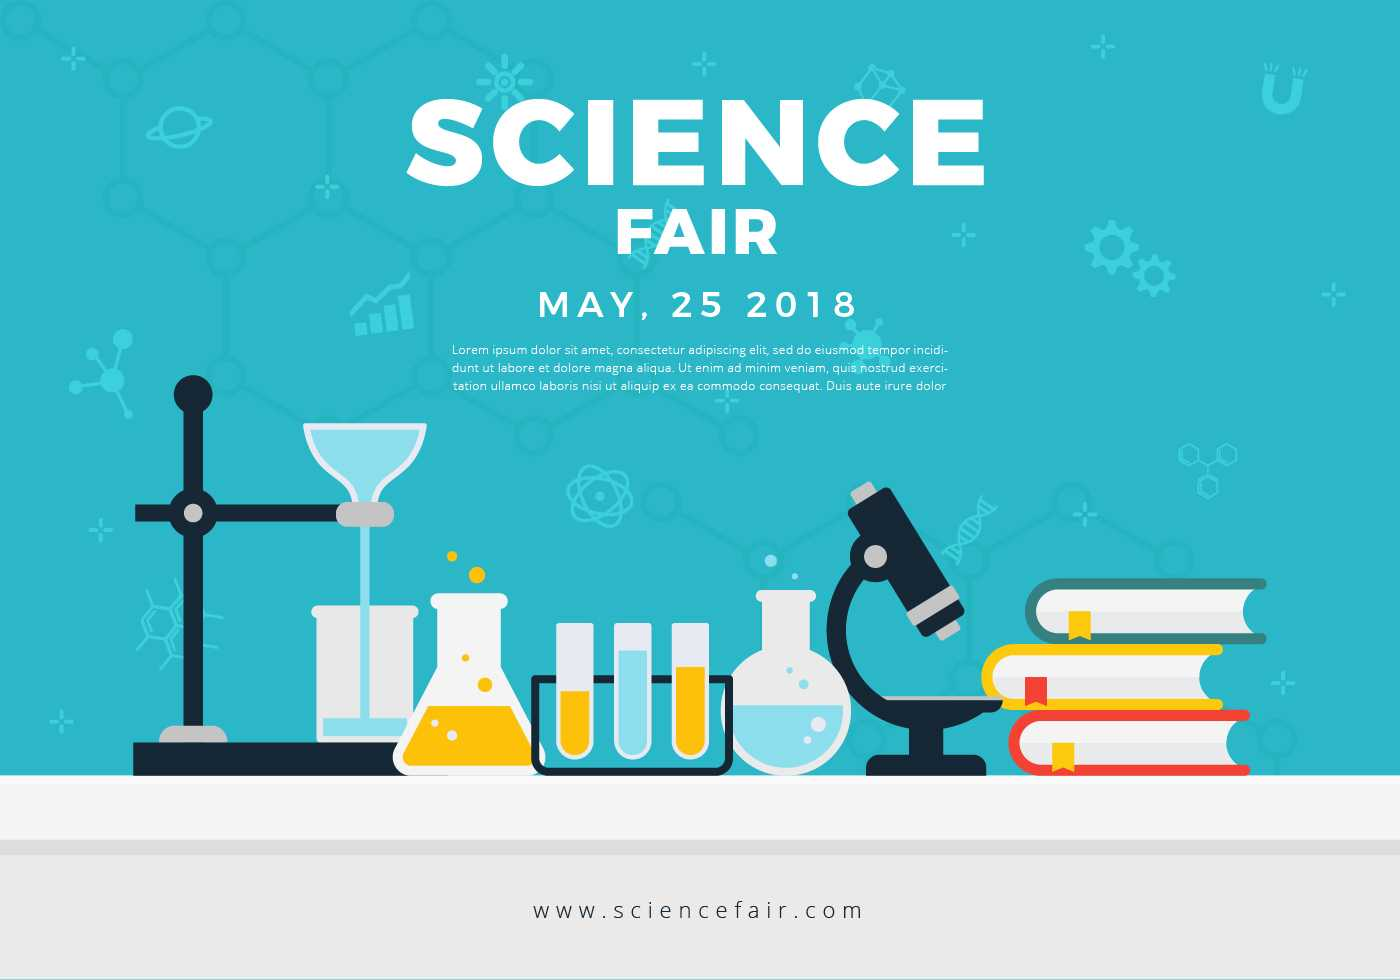 Science Fair Poster Banner - Download Free Vectors, Clipart Throughout Science Fair Banner Template